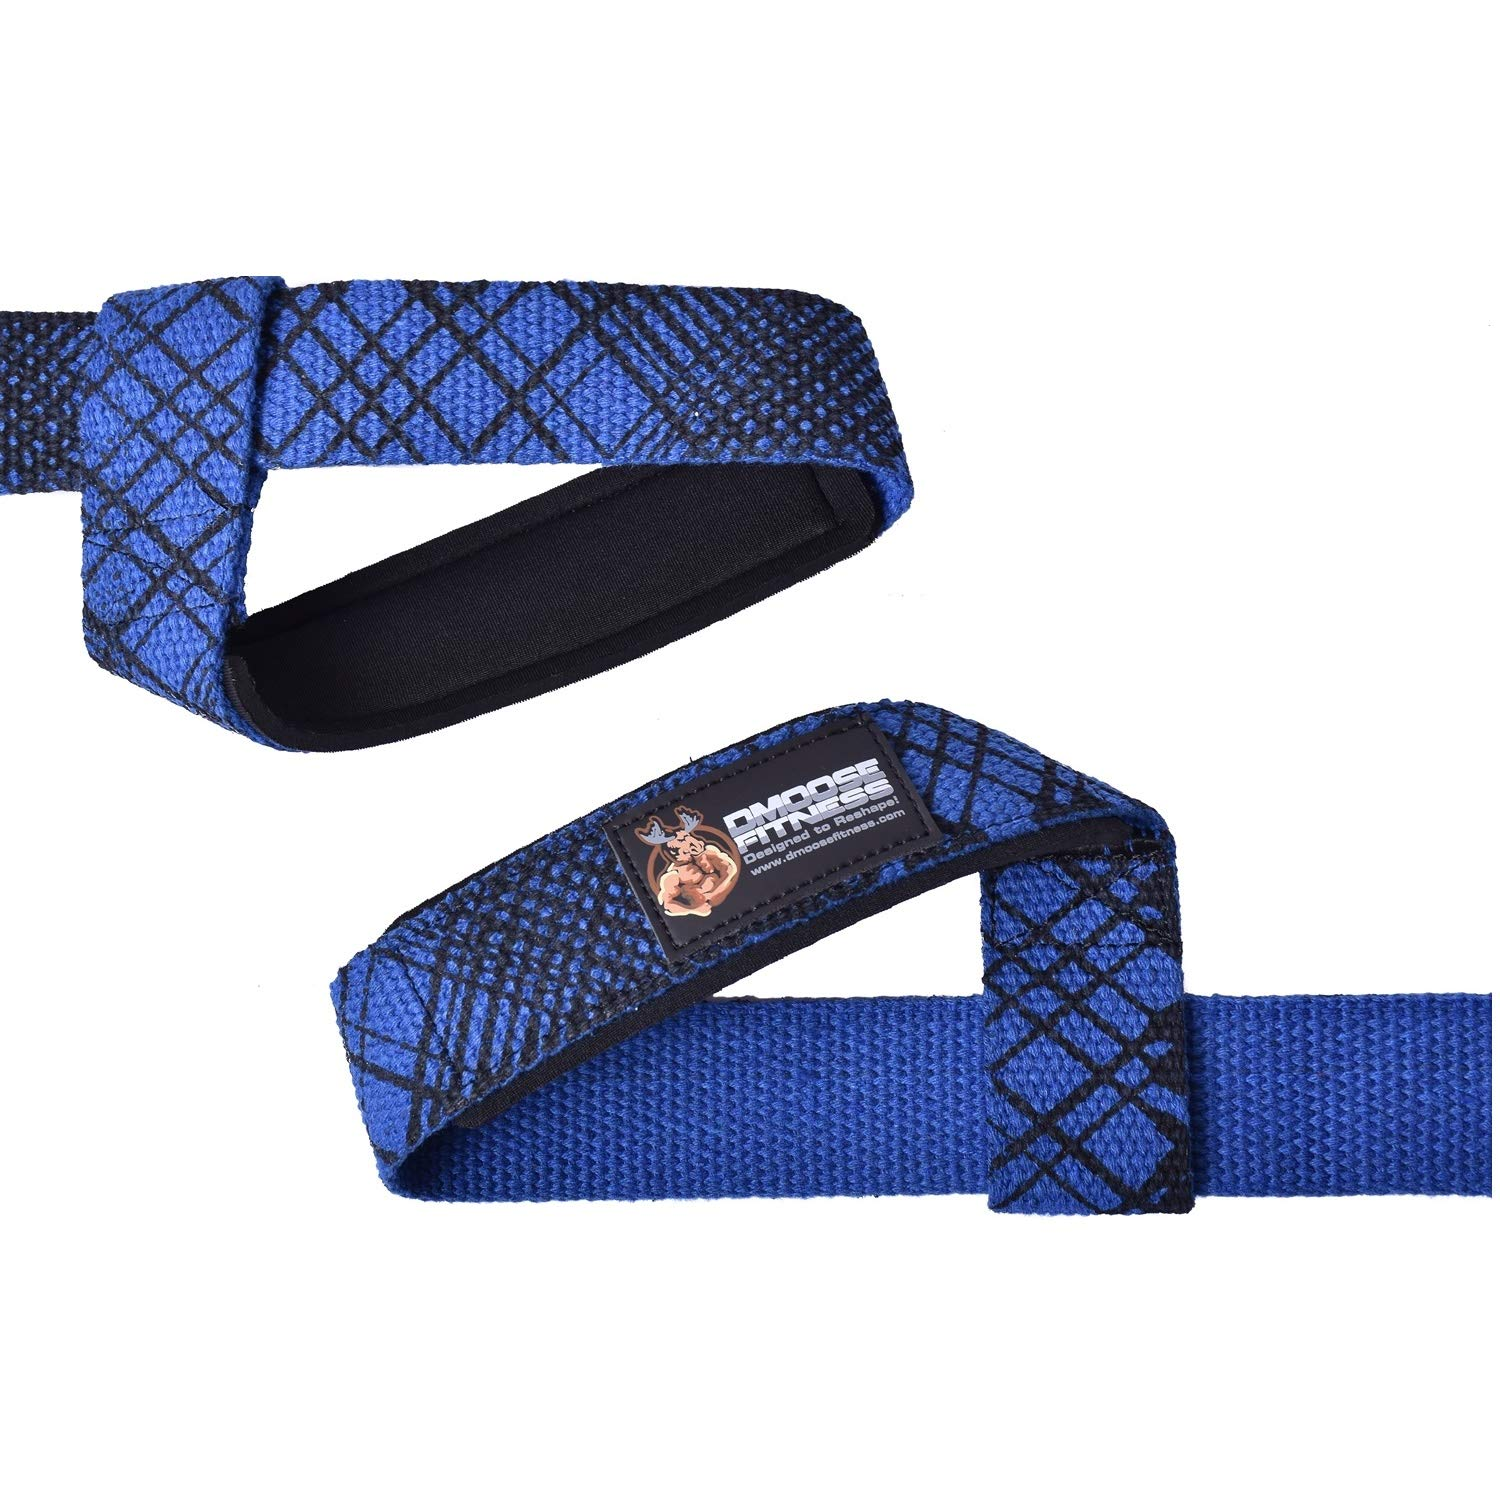 Reinforced Stitching DMoose Fitness Lifting Straps Neoprene Padding Non-Slip Support Secure your Grip by Maximizing Weightlifting Premium Quality Strength Powerlifting Adjustment loop Pair